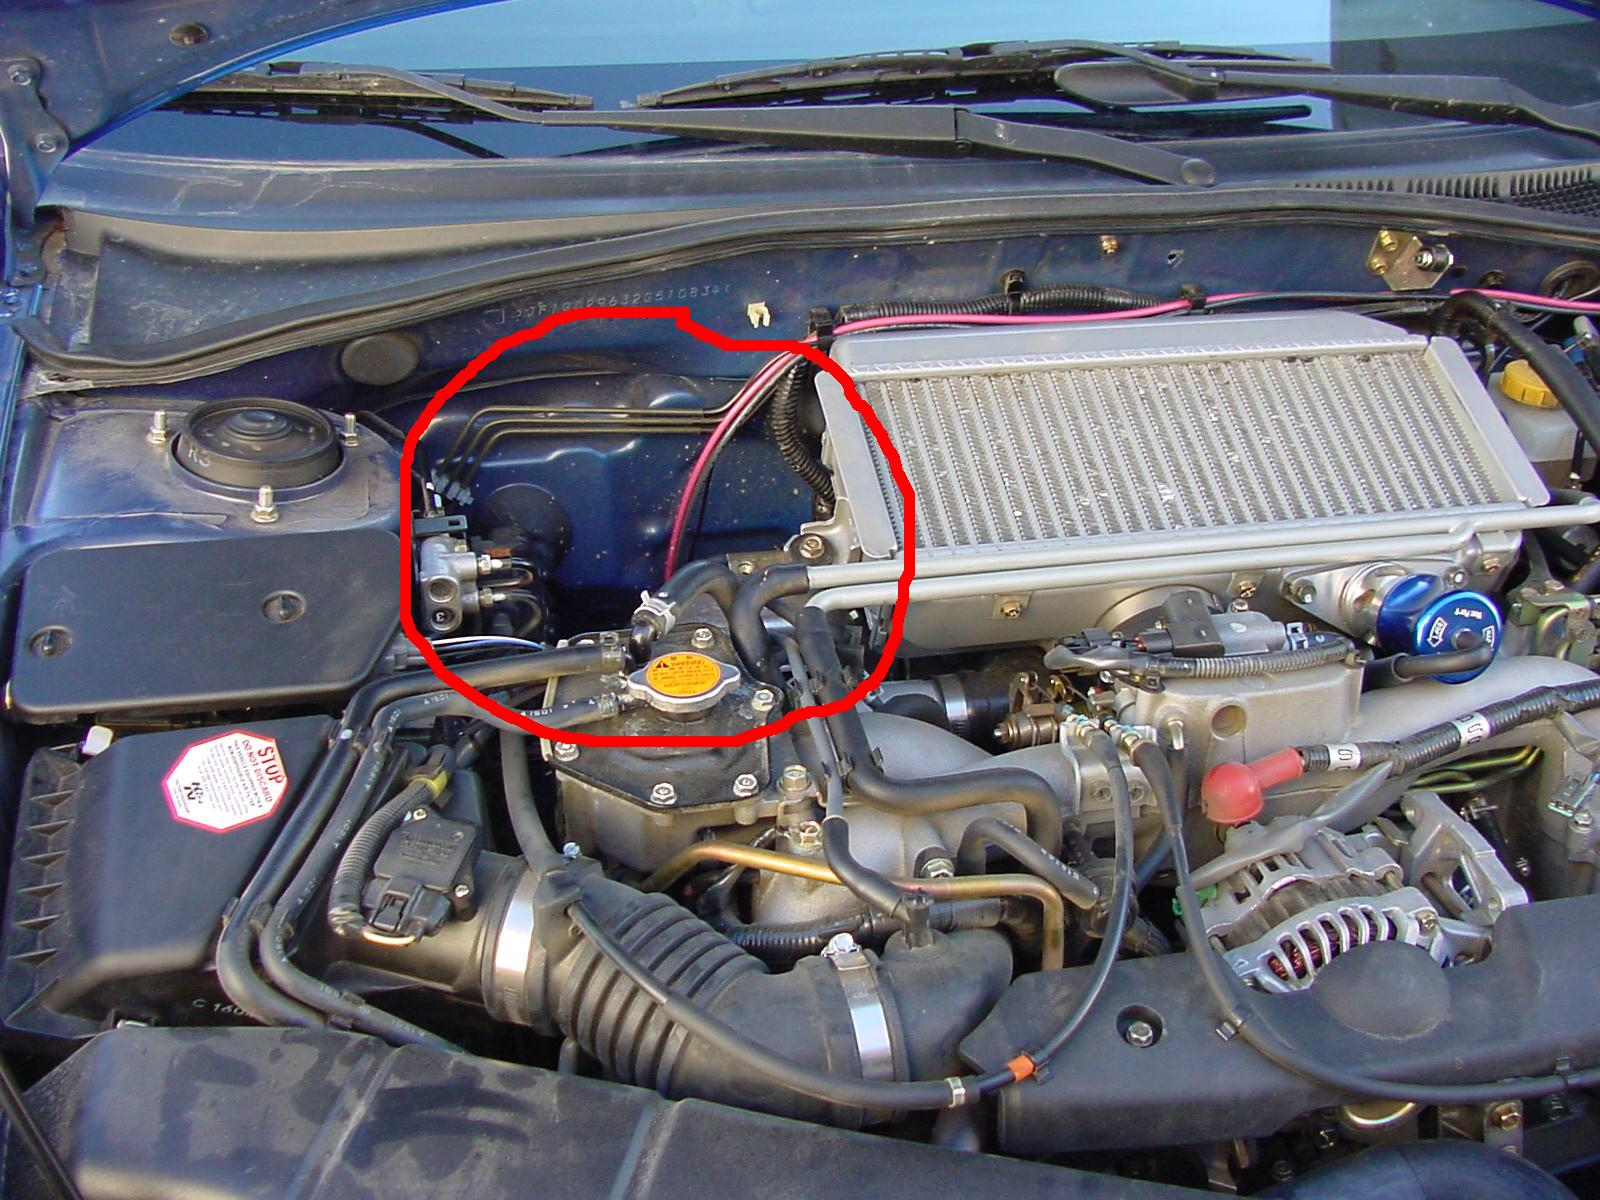 2002 Subaru Impreza Engine - As You Can See Ive Circled The Area Where You Should Investigate To Find The Tap Point For The Probe In The Following Image Ive Got A Closer Look At - 2002 Subaru Impreza Engine